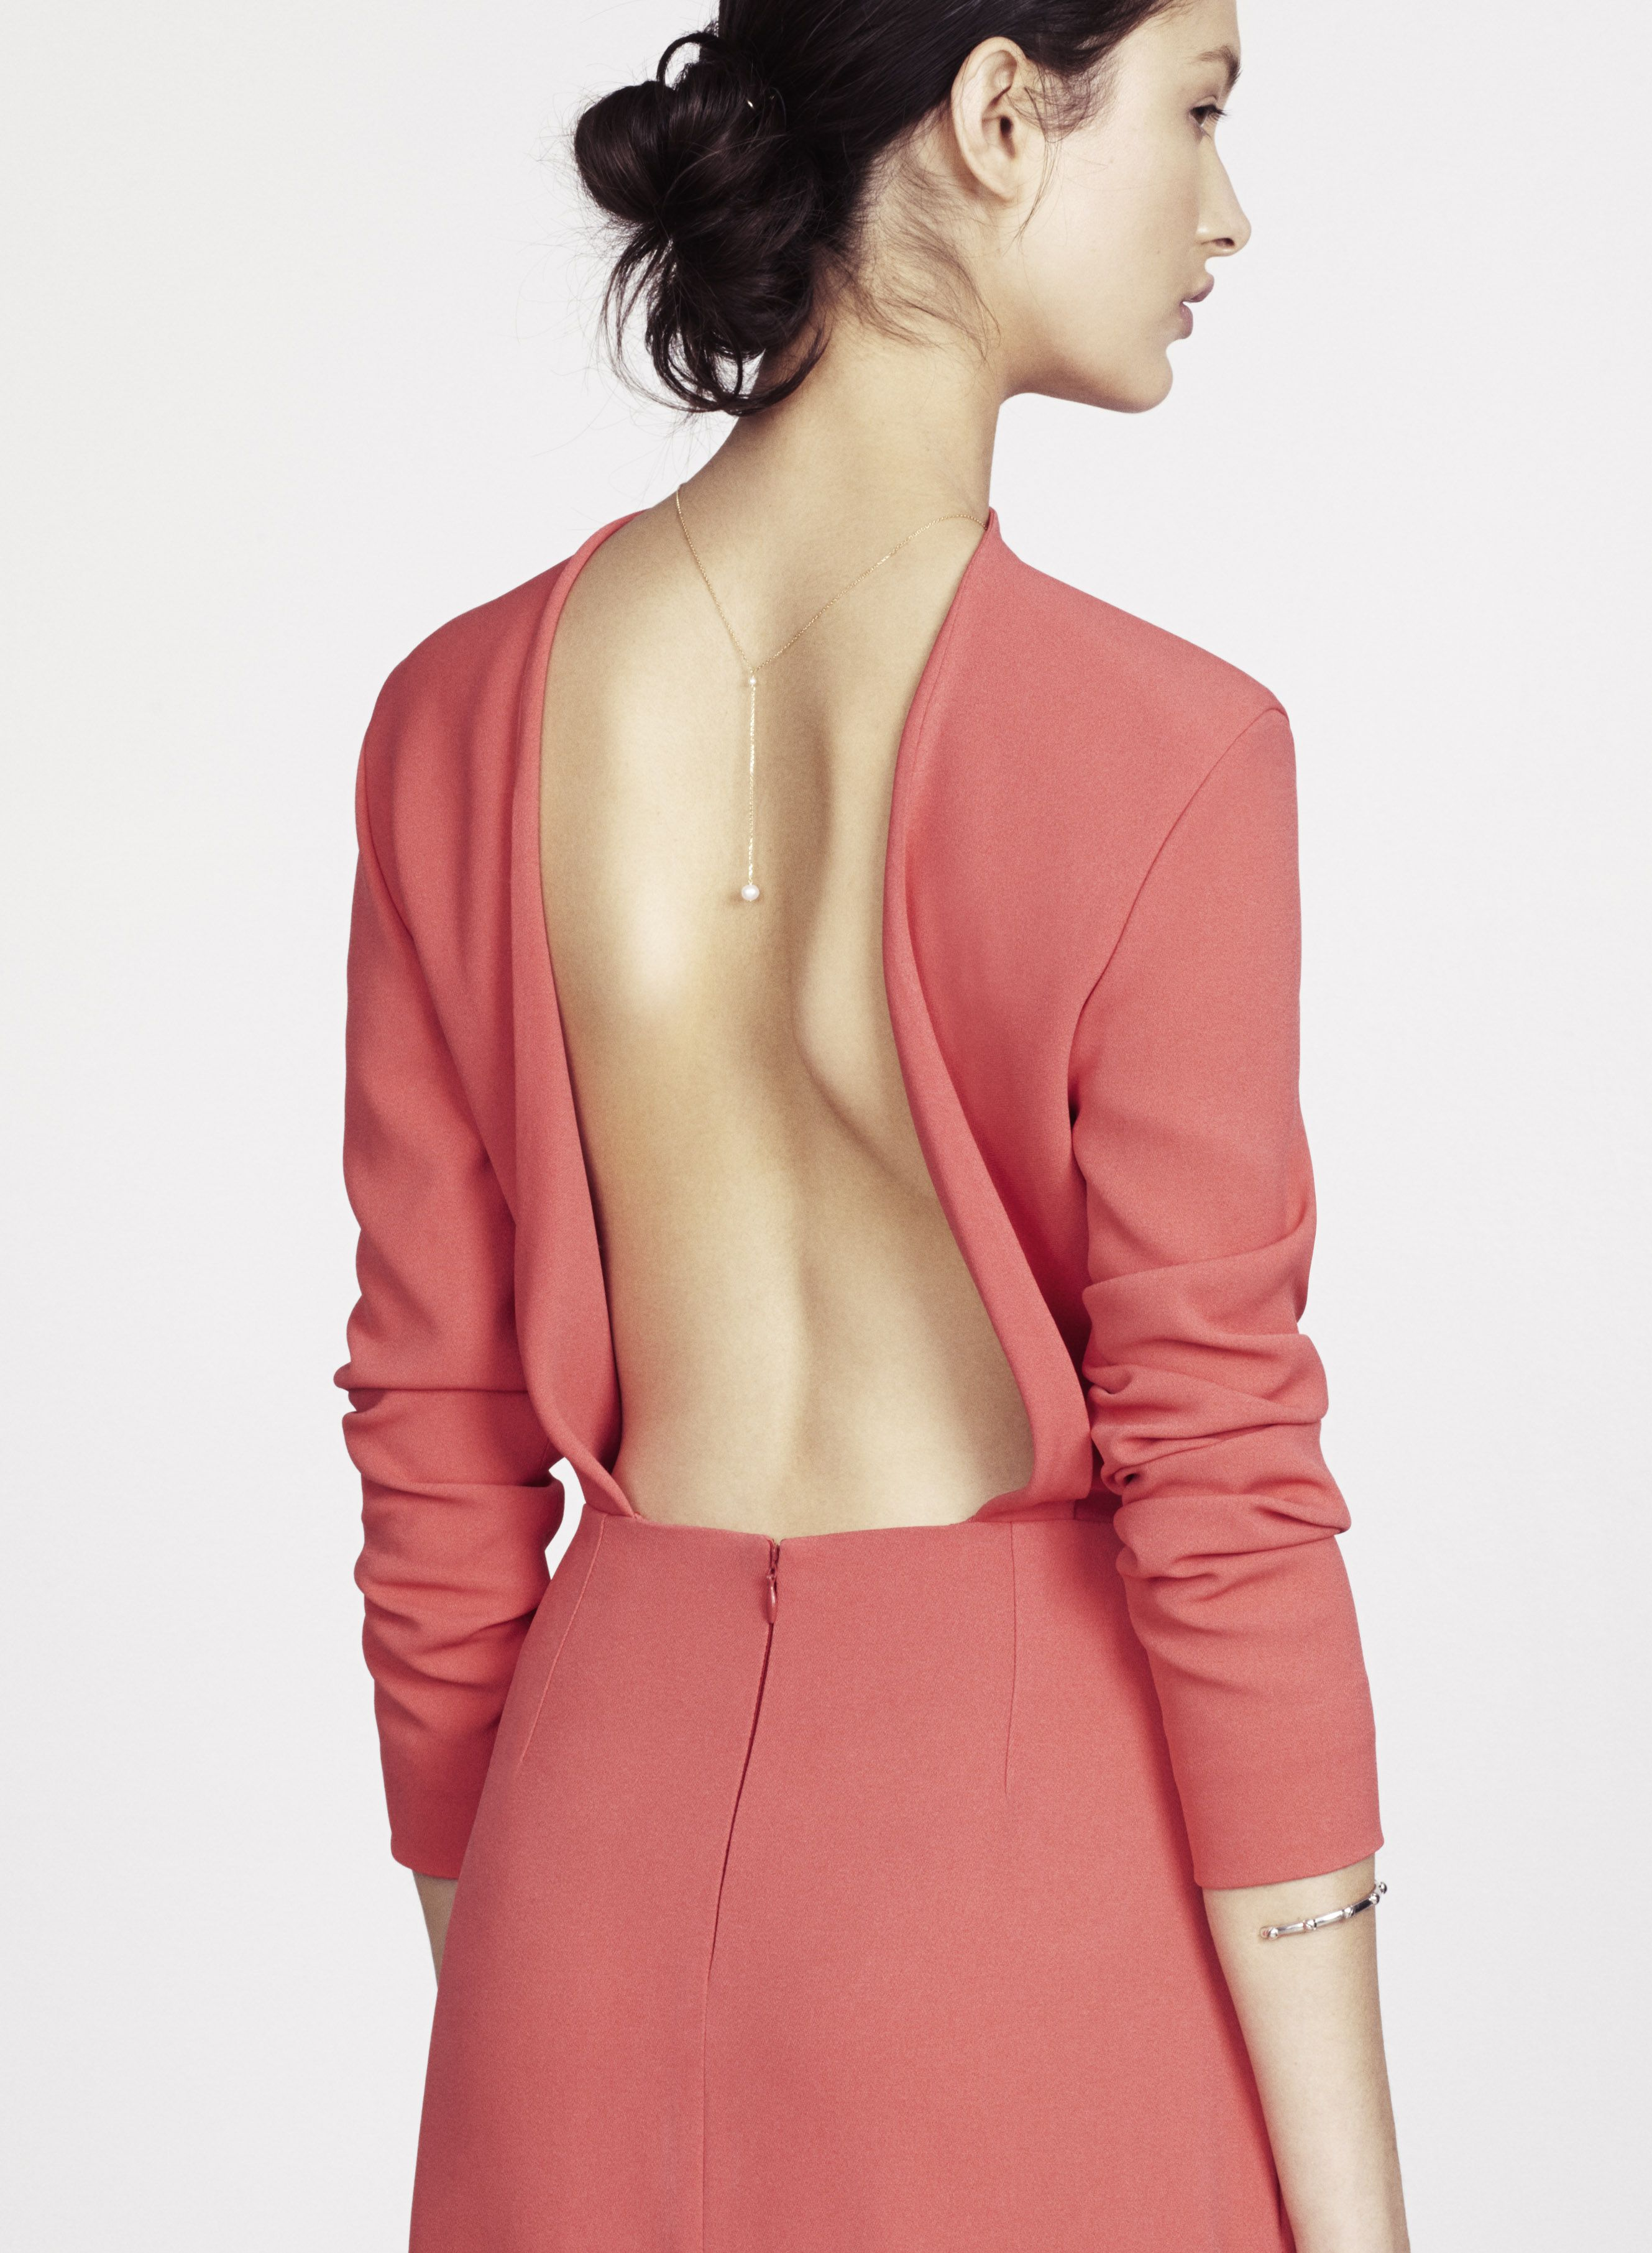 Charlotte simpson coral long sleeve open back evening gown dress